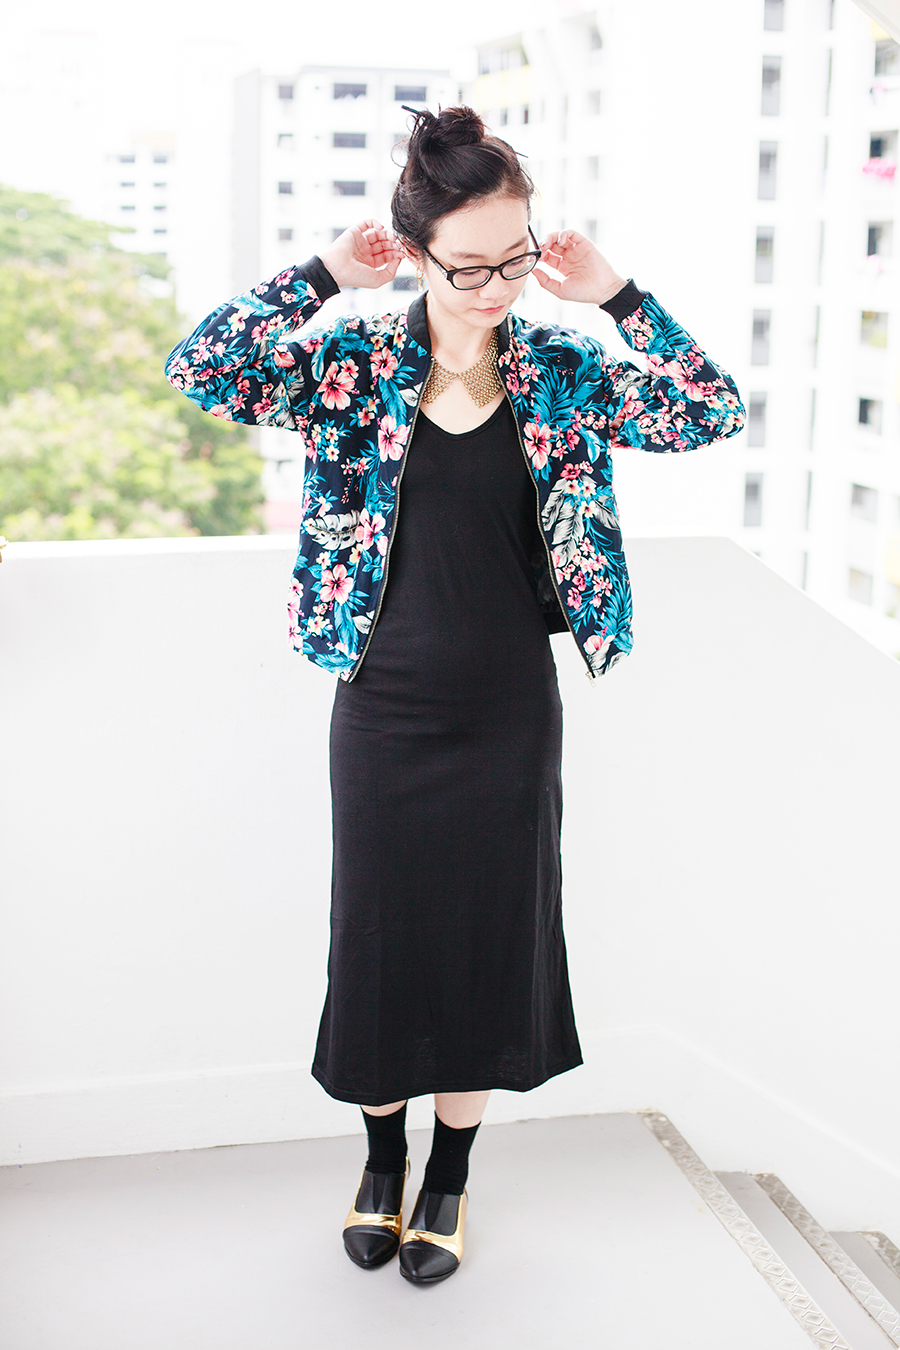 Day to night outfit: Newdress blue floral jacket, Newdress v-neck strappy black dress, Forever 21 gold chain collar necklace, Gap black frame glasses, Taobao black crew socks, Something Borrowed Dual-Toned black and gold Pointed Flats via Zalora.